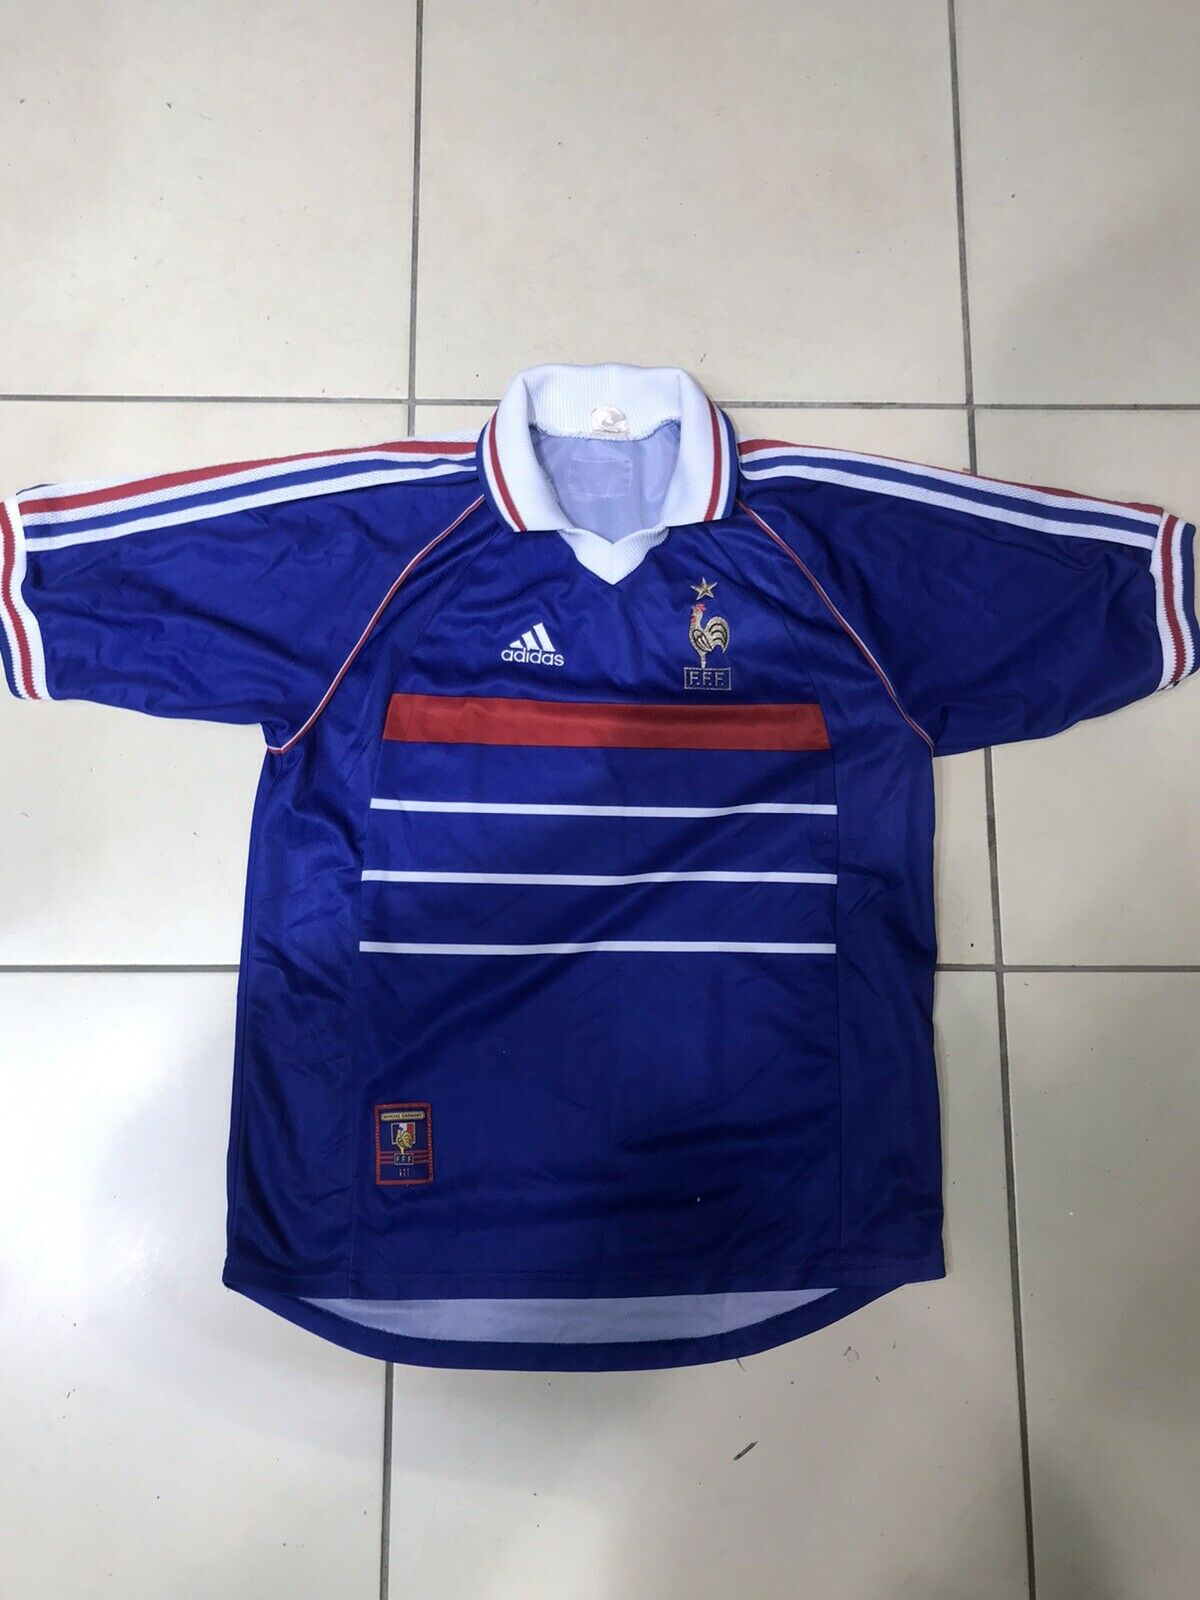 Maillot Foot Ancien Equipe De France 98 Dimensione L